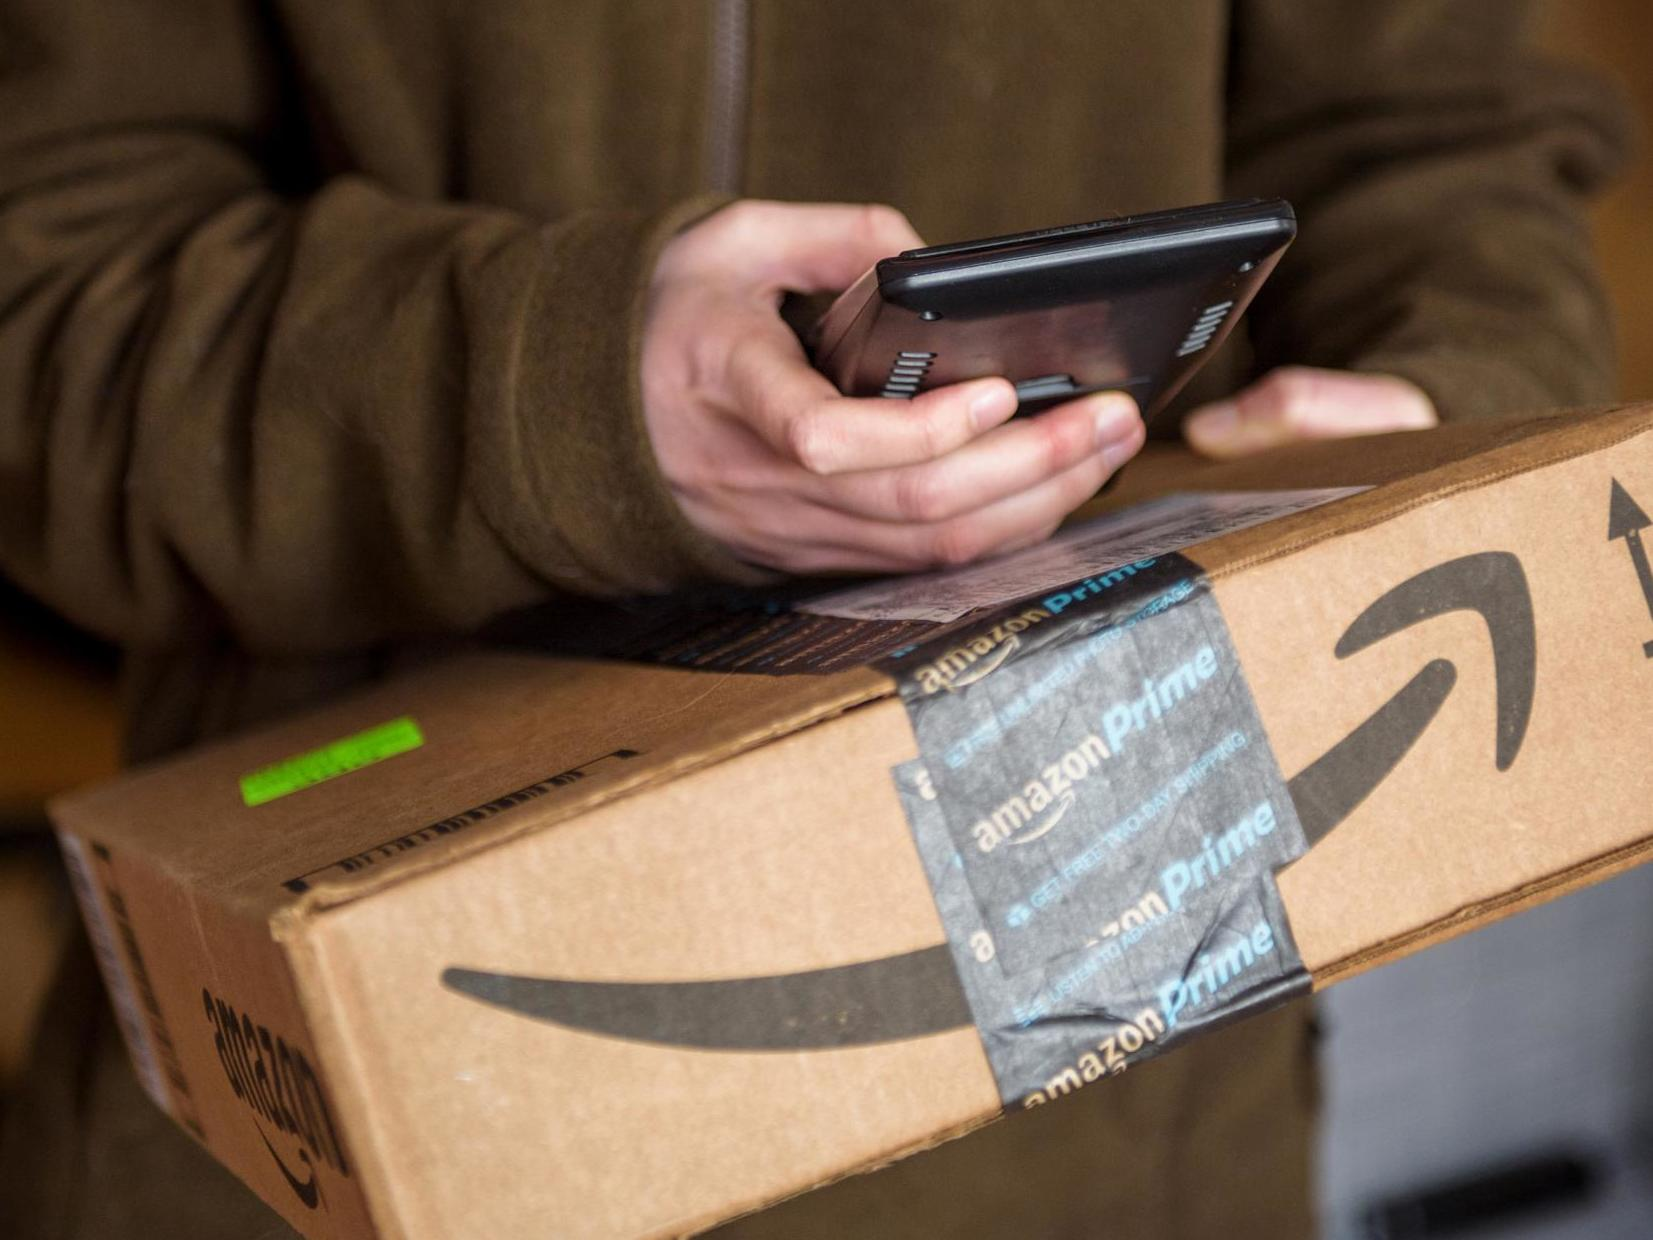 Amazon driver refuses to deliver bottle of sherry to 92-year-old woman without ID